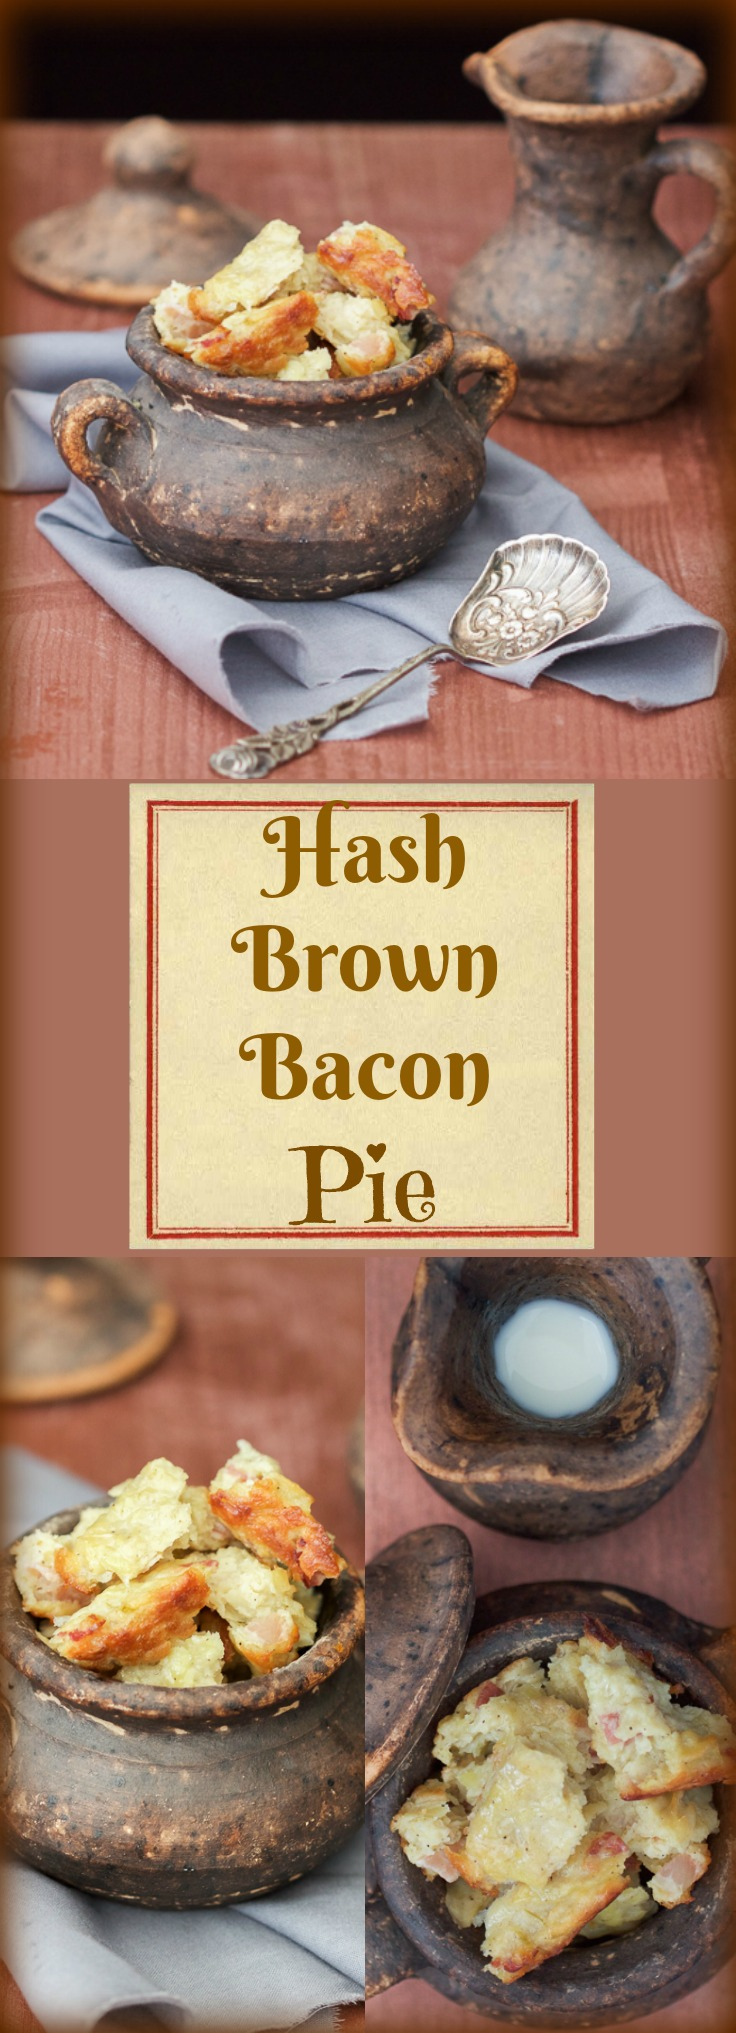 Hash Brown Bacon Pie is exactly what it sounds: heavenly tasting grated potatoes, combined and baked with bacon bits.